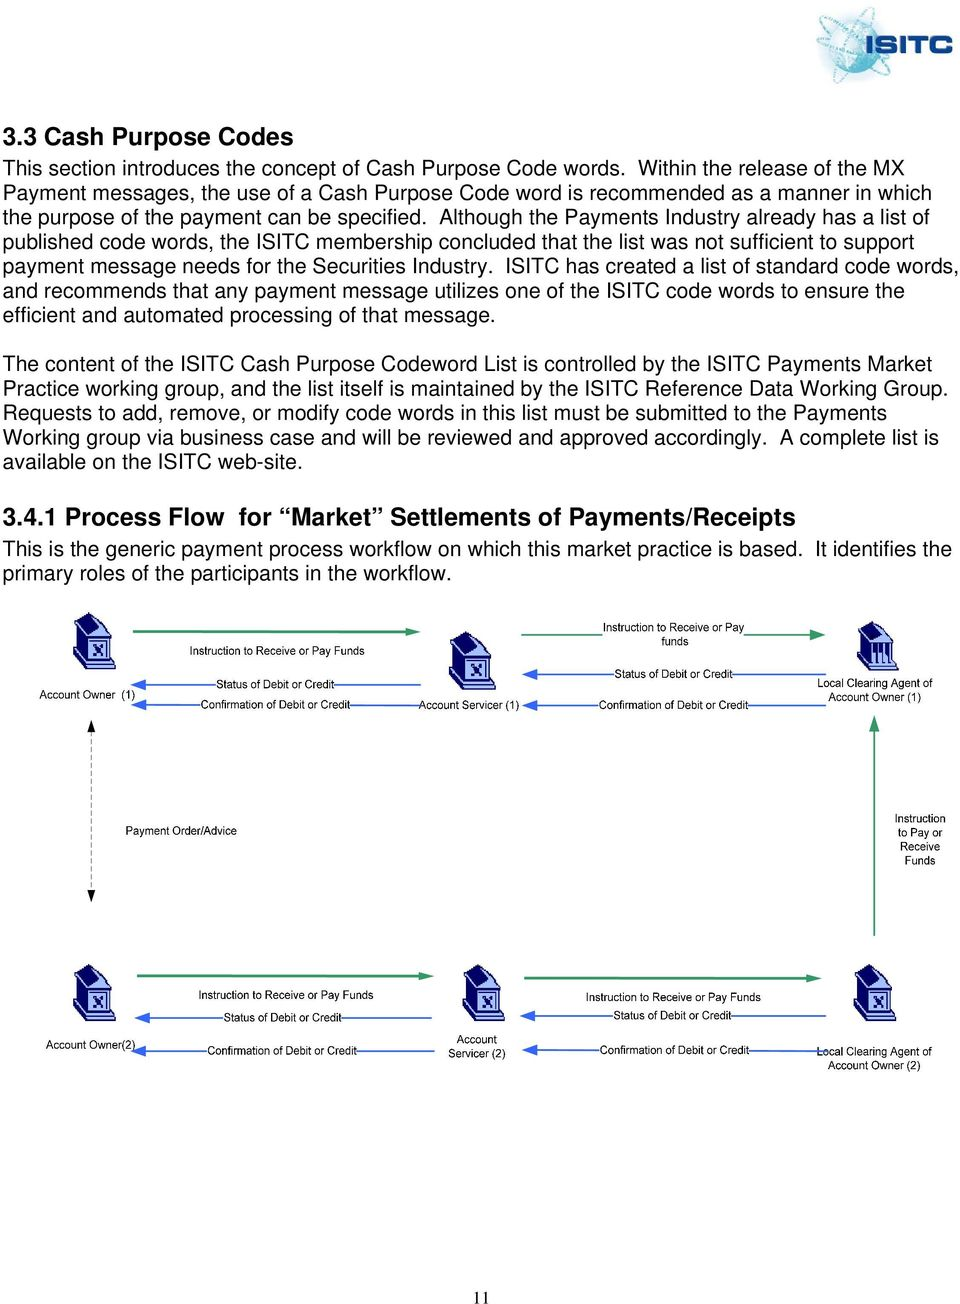 Although the Payments Industry already has a list of published code words, the ISITC membership concluded that the list was not sufficient to support payment message needs for the Securities Industry.